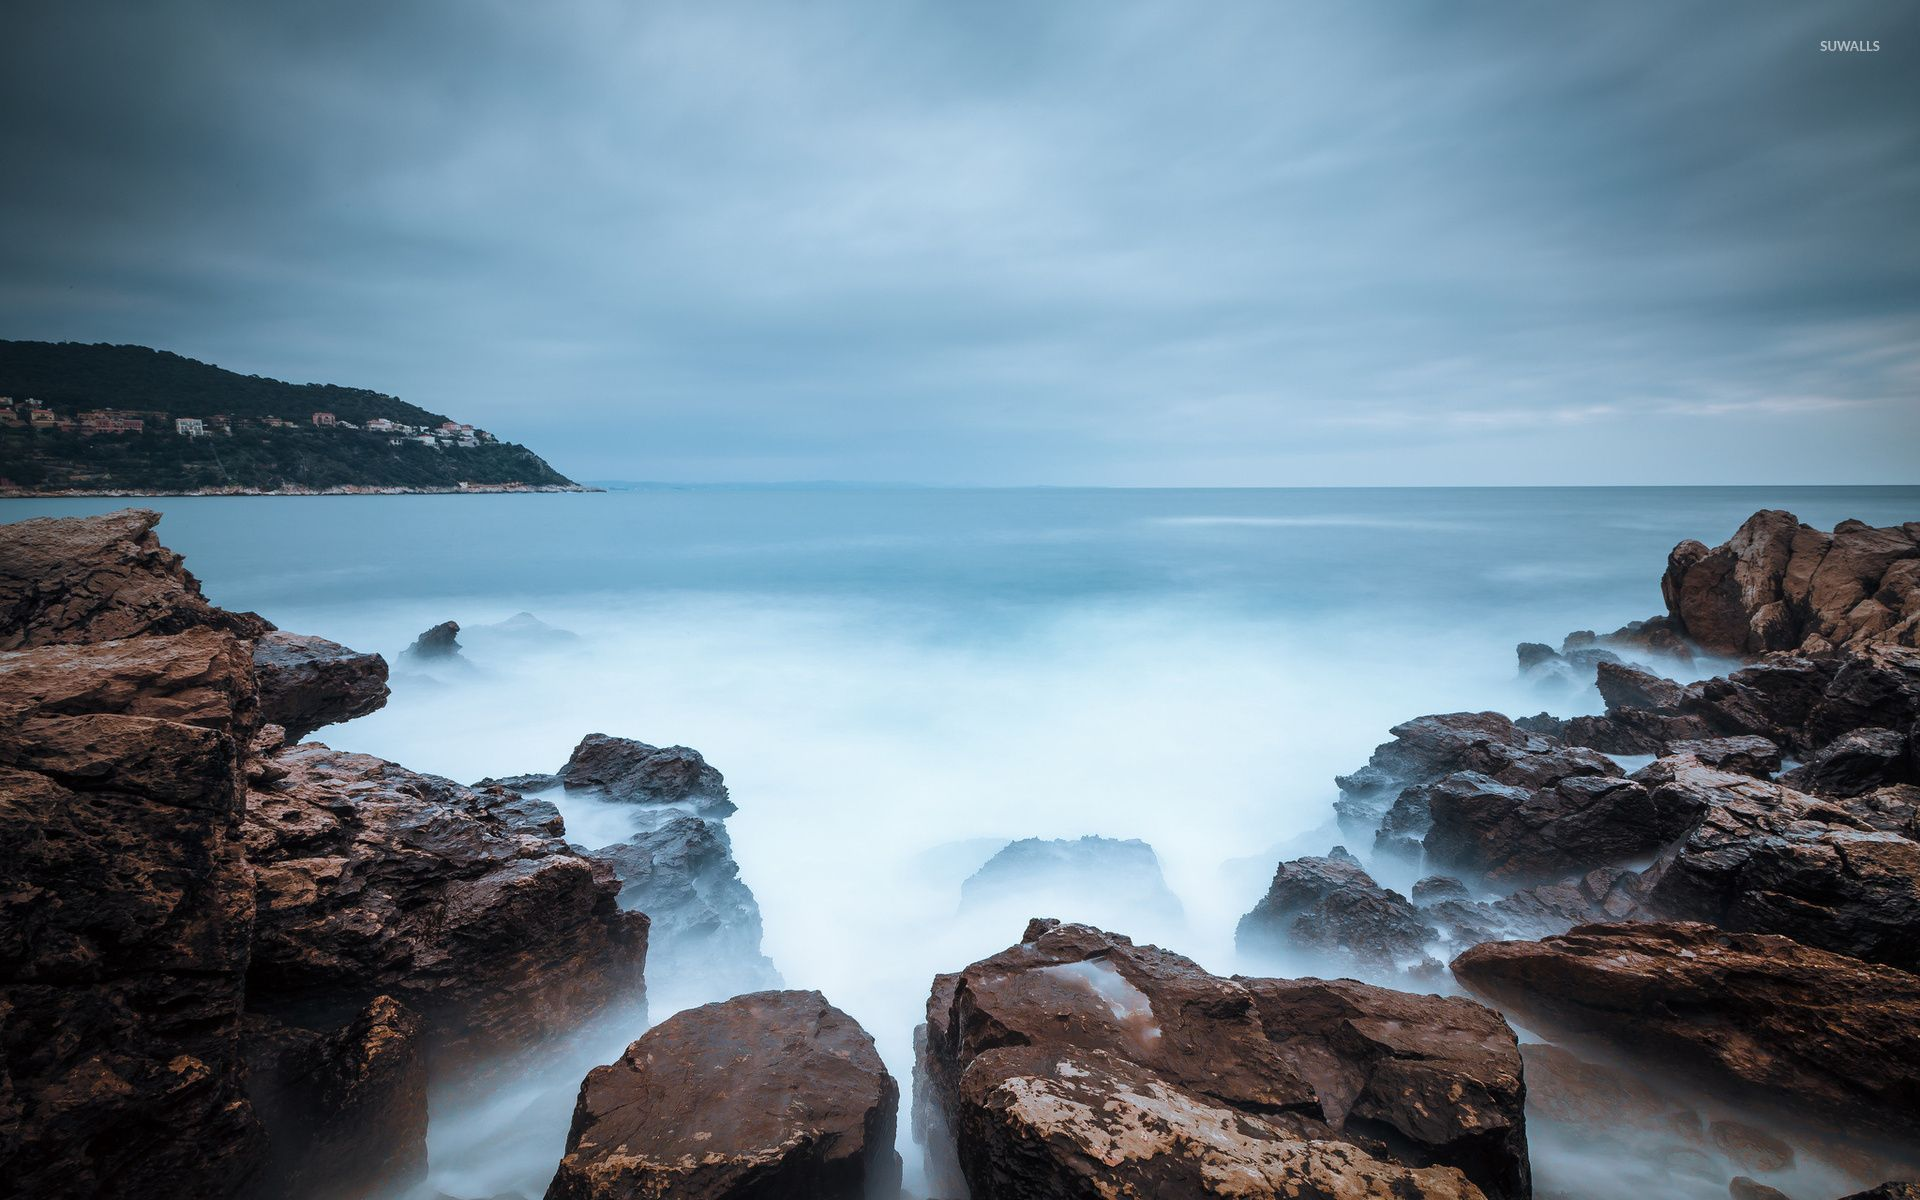 Misty water reaching to the rocky shore wallpaper - Beach wallpapers ...